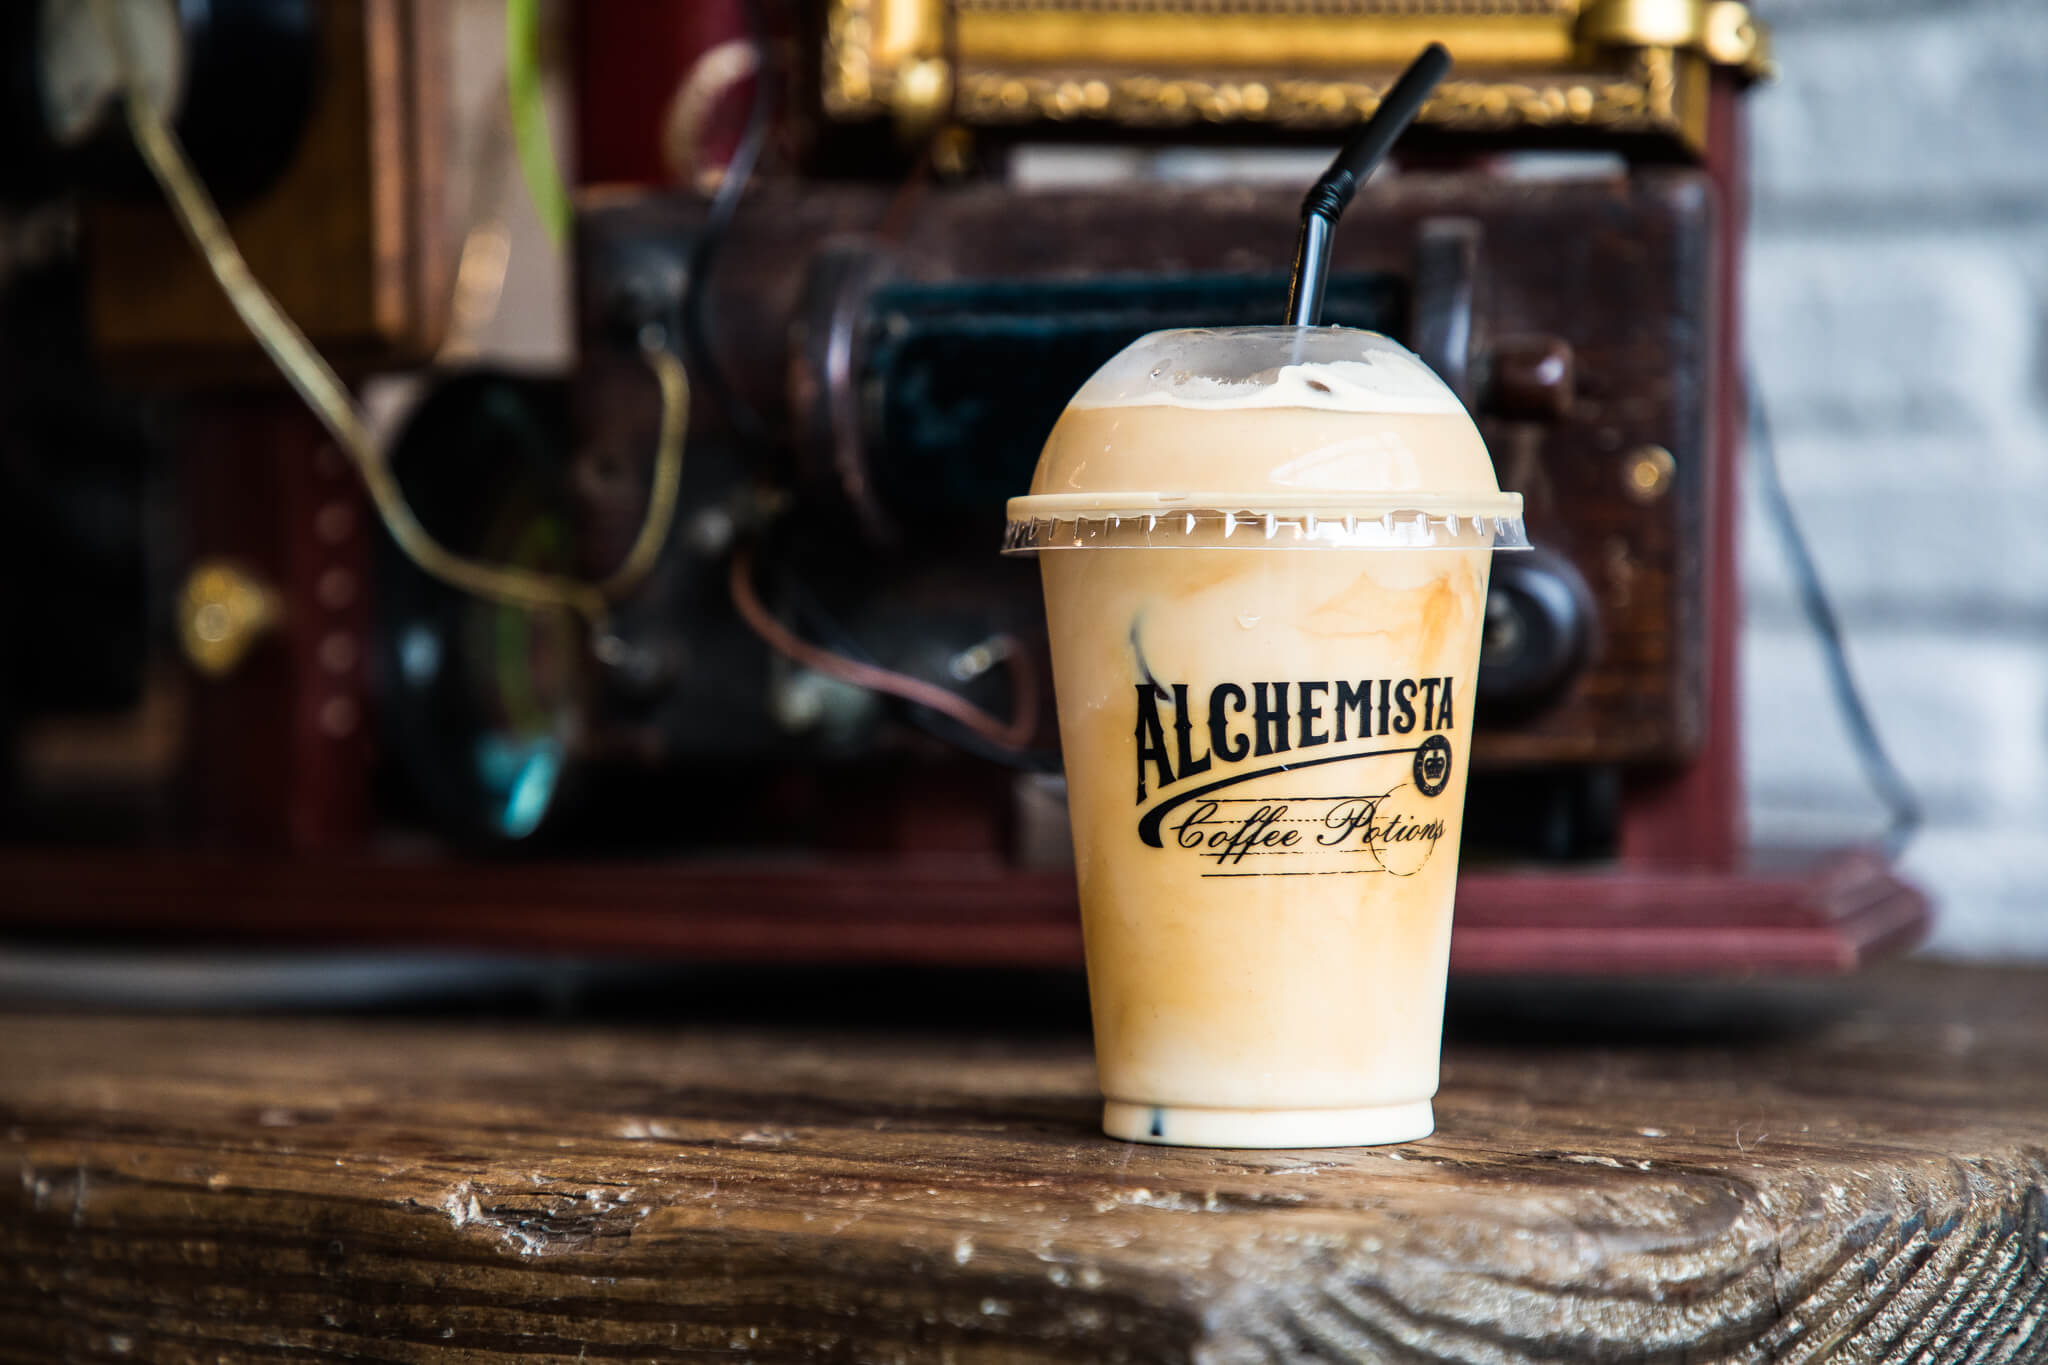 Alchemista coffee cup take-out